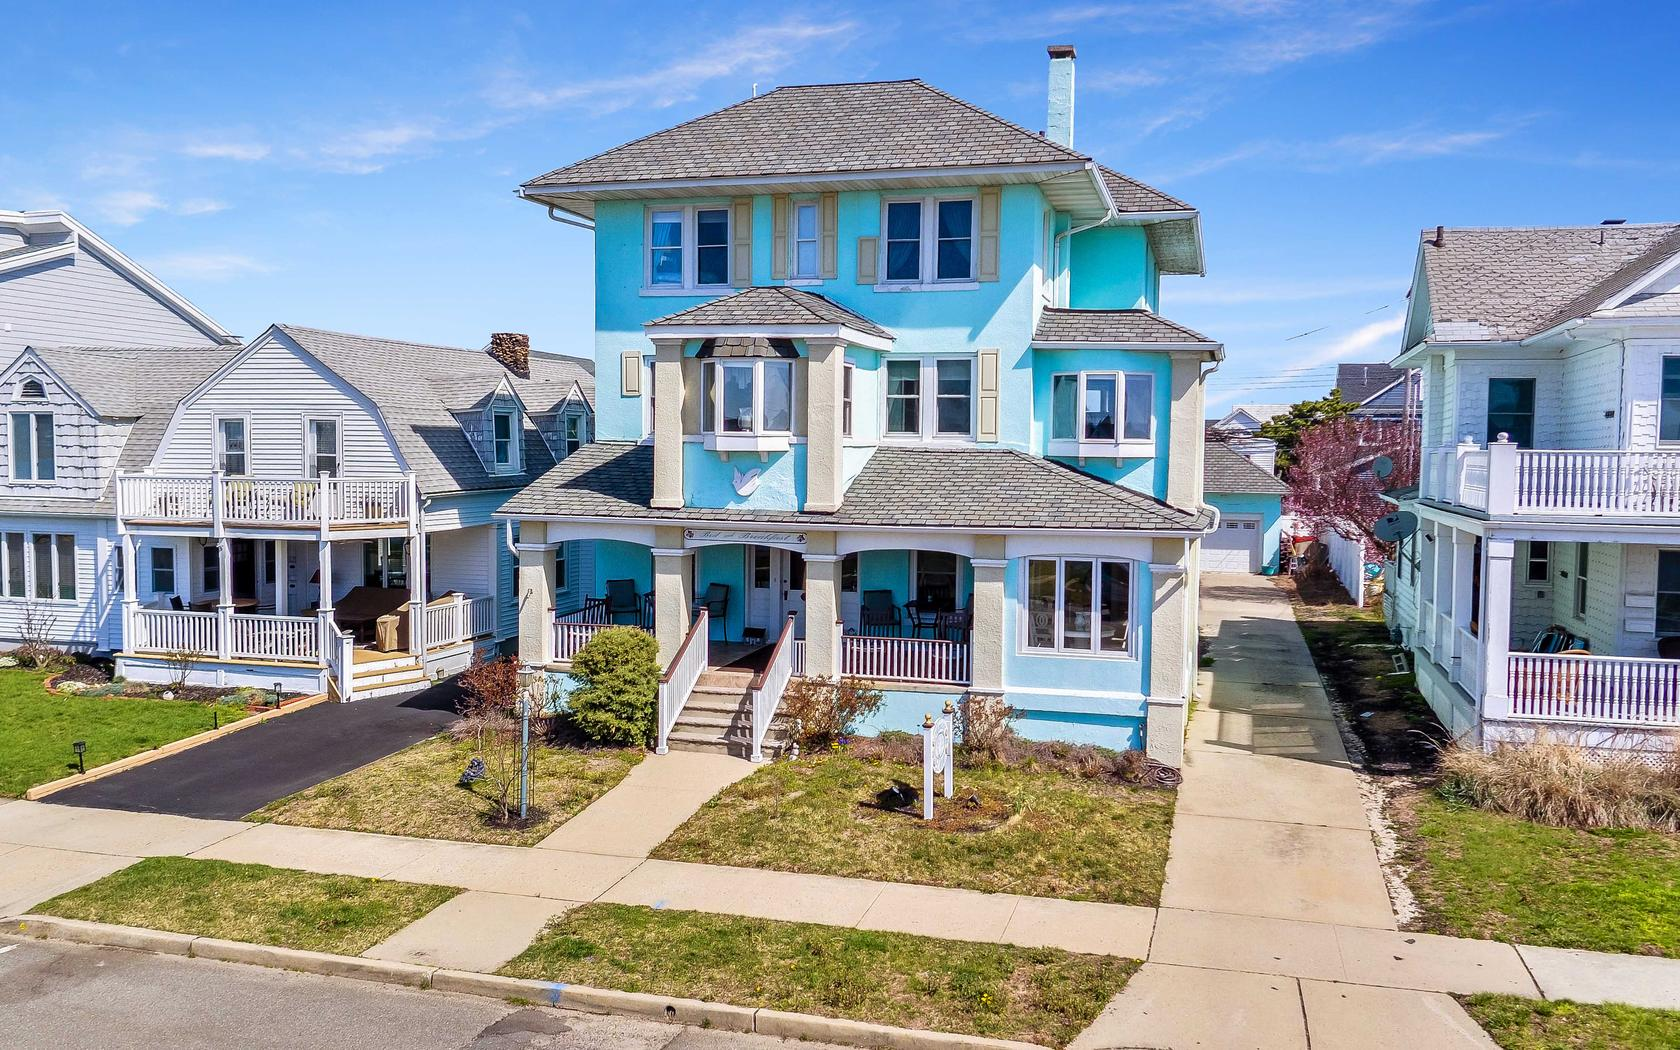 Single Family Home for Sale at Spacious Belmar Shore Colonial 204 5th Avenue Belmar, New Jersey 07719 United States